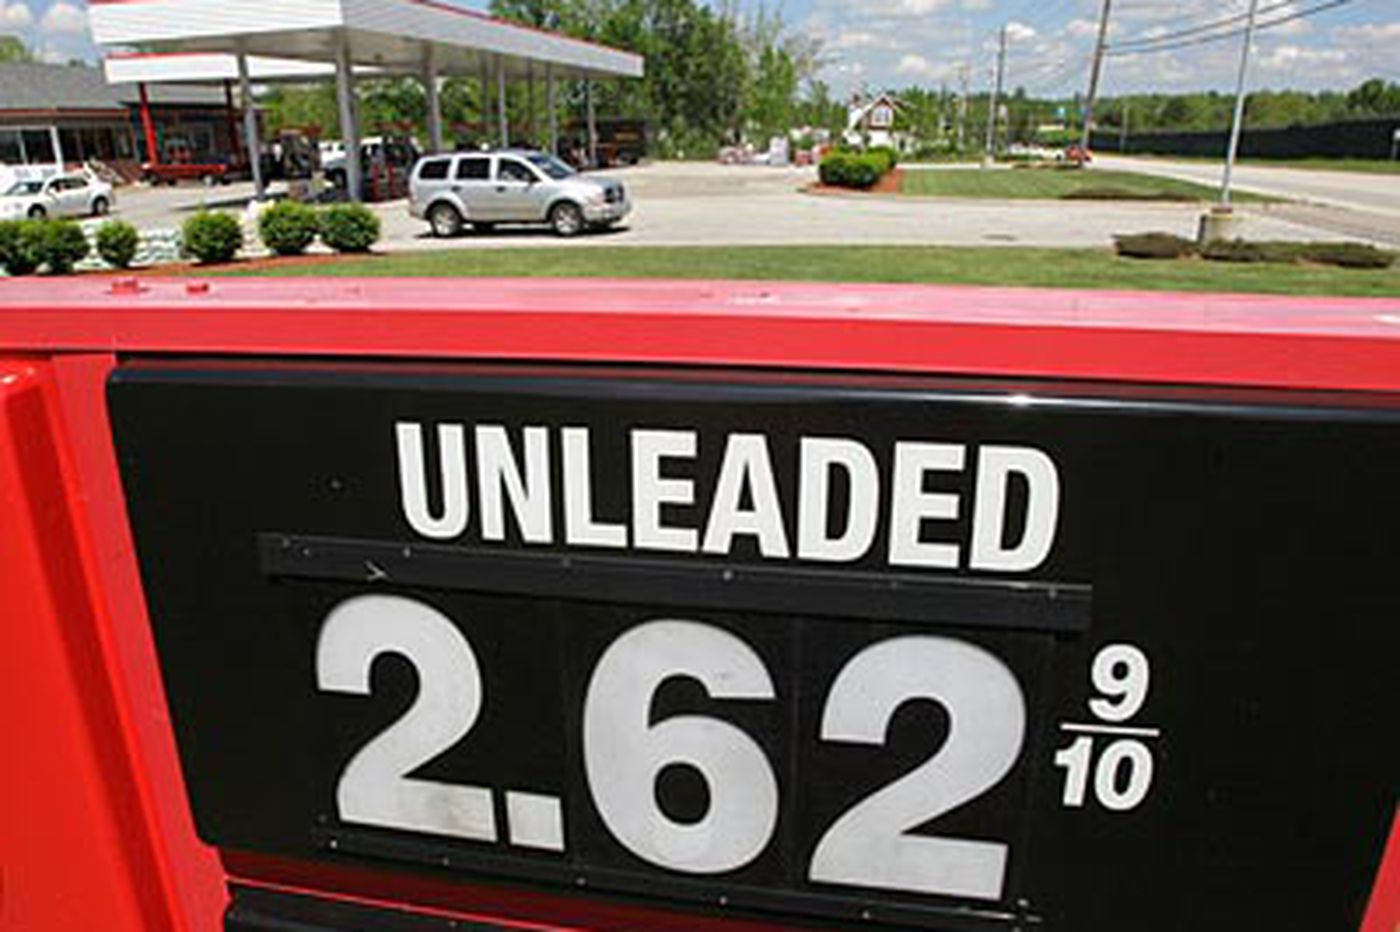 Pa. lawmakers urged to solve crisis by raising gas tax